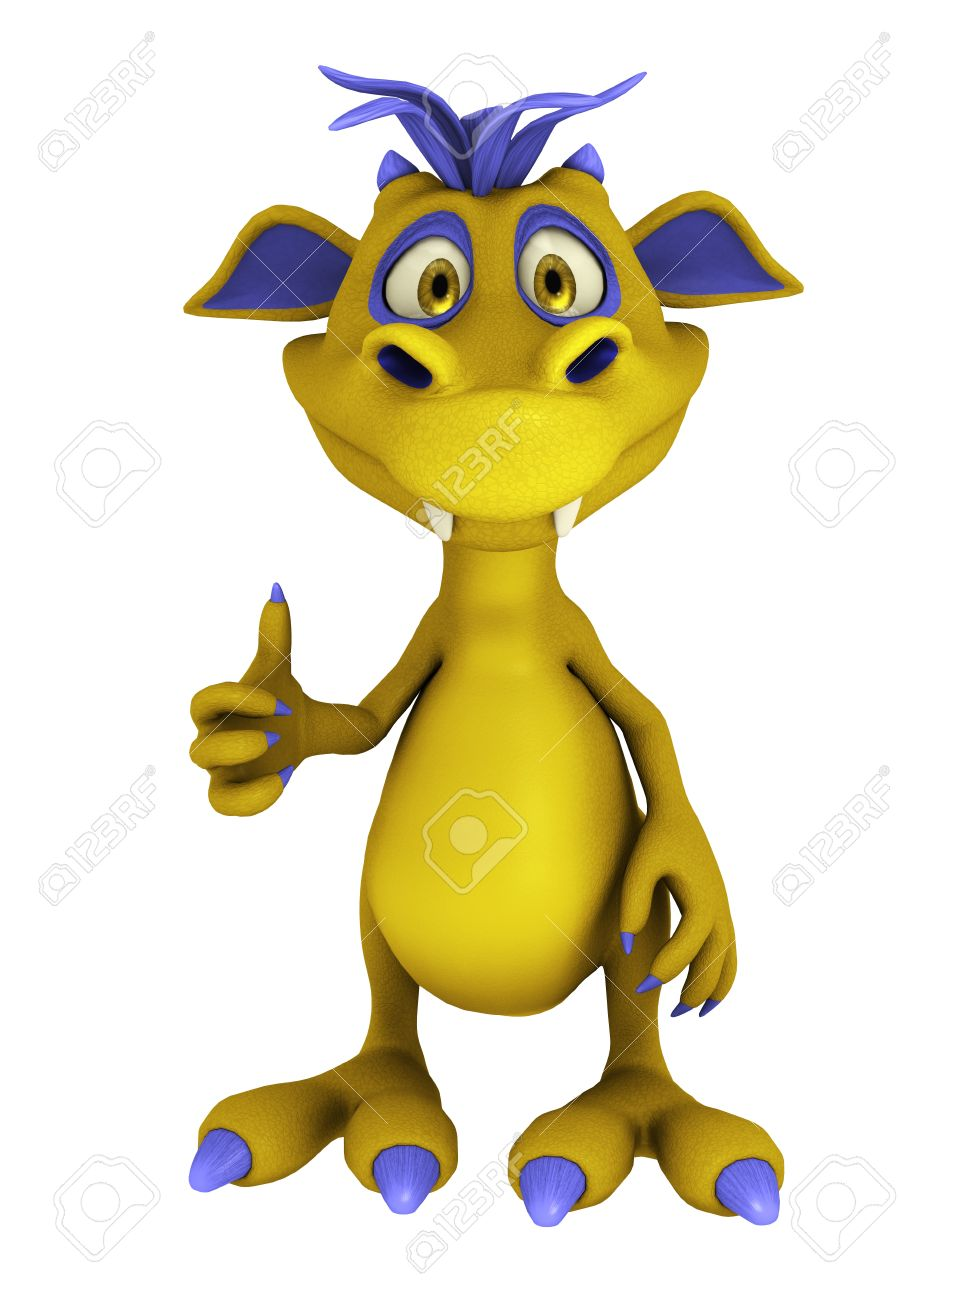 A cute friendly cartoon monster doing a thumbs up. The monster is yellow with purple hair. Isolated on white background. Stock Photo - 9037555